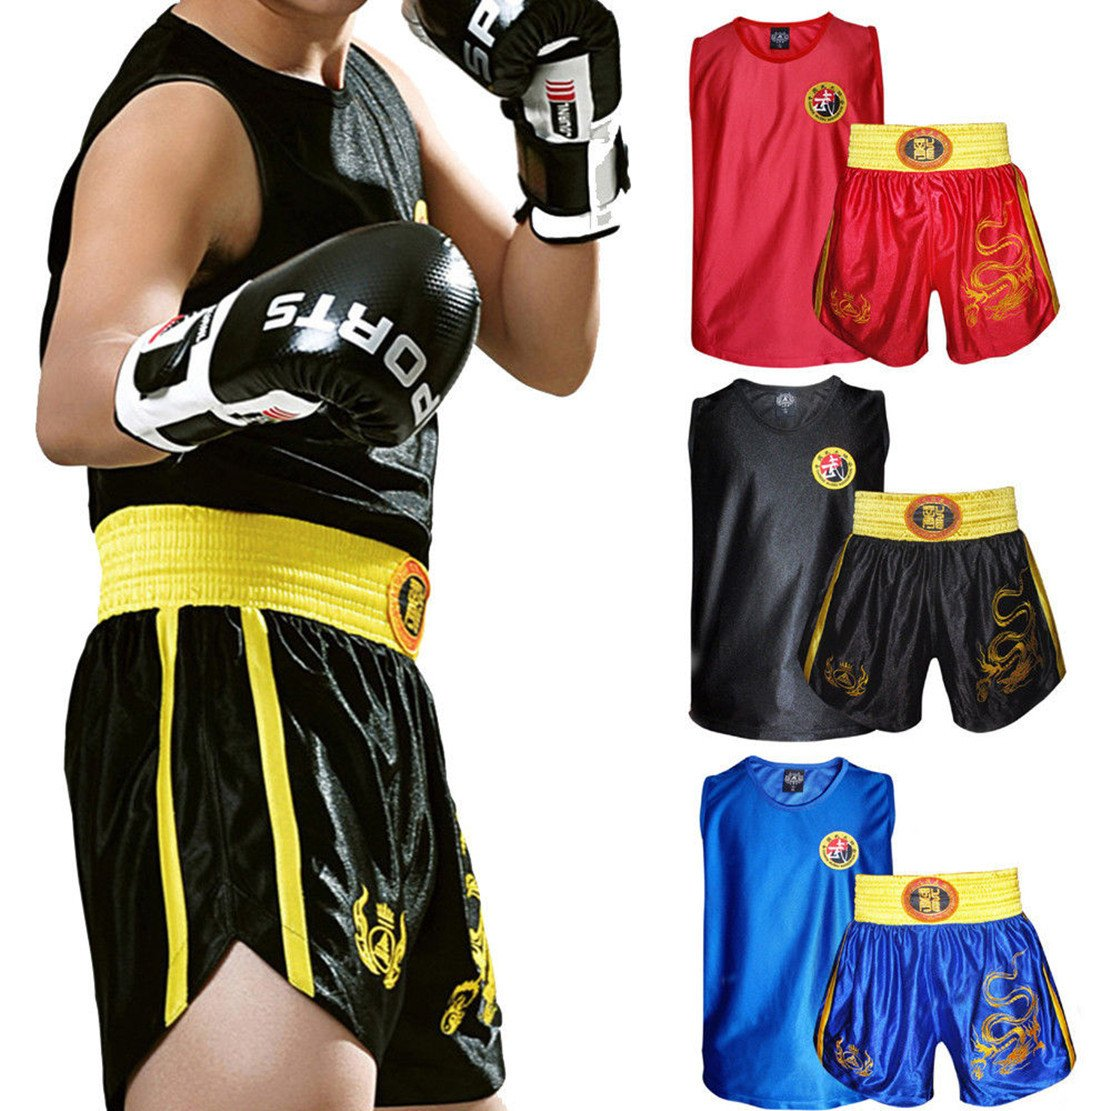 Sports & Entertainment Boxing Muay Thai Pants Embroidered Satin Boxing Pants Trousers Shorts Sanda Fight Training Suit Martial Arts Clothes Boxing Jerseys Products Are Sold Without Limitations